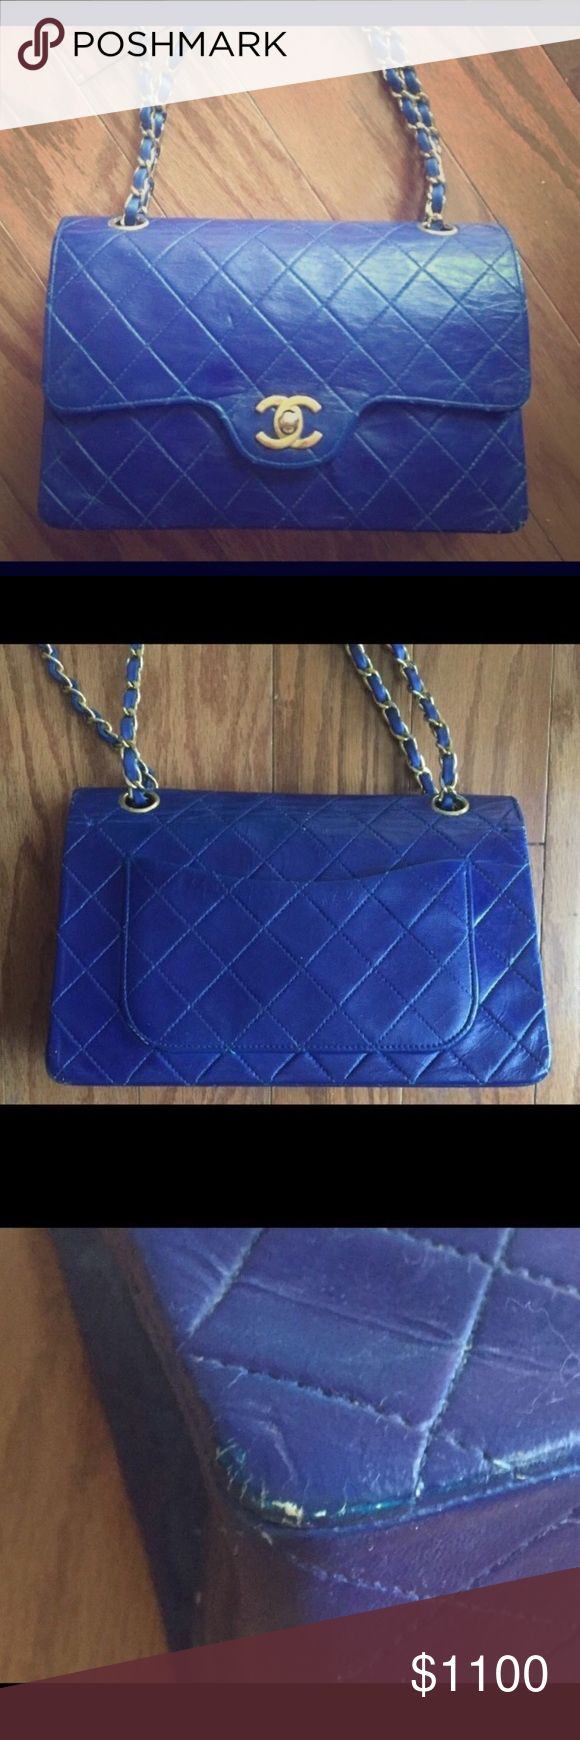 Chanel handbag superb vintage chanel bag vintage leather - Auth Vintage Chanel Double Flap Shoulder Bag From 1985 It Was Dyed Before With